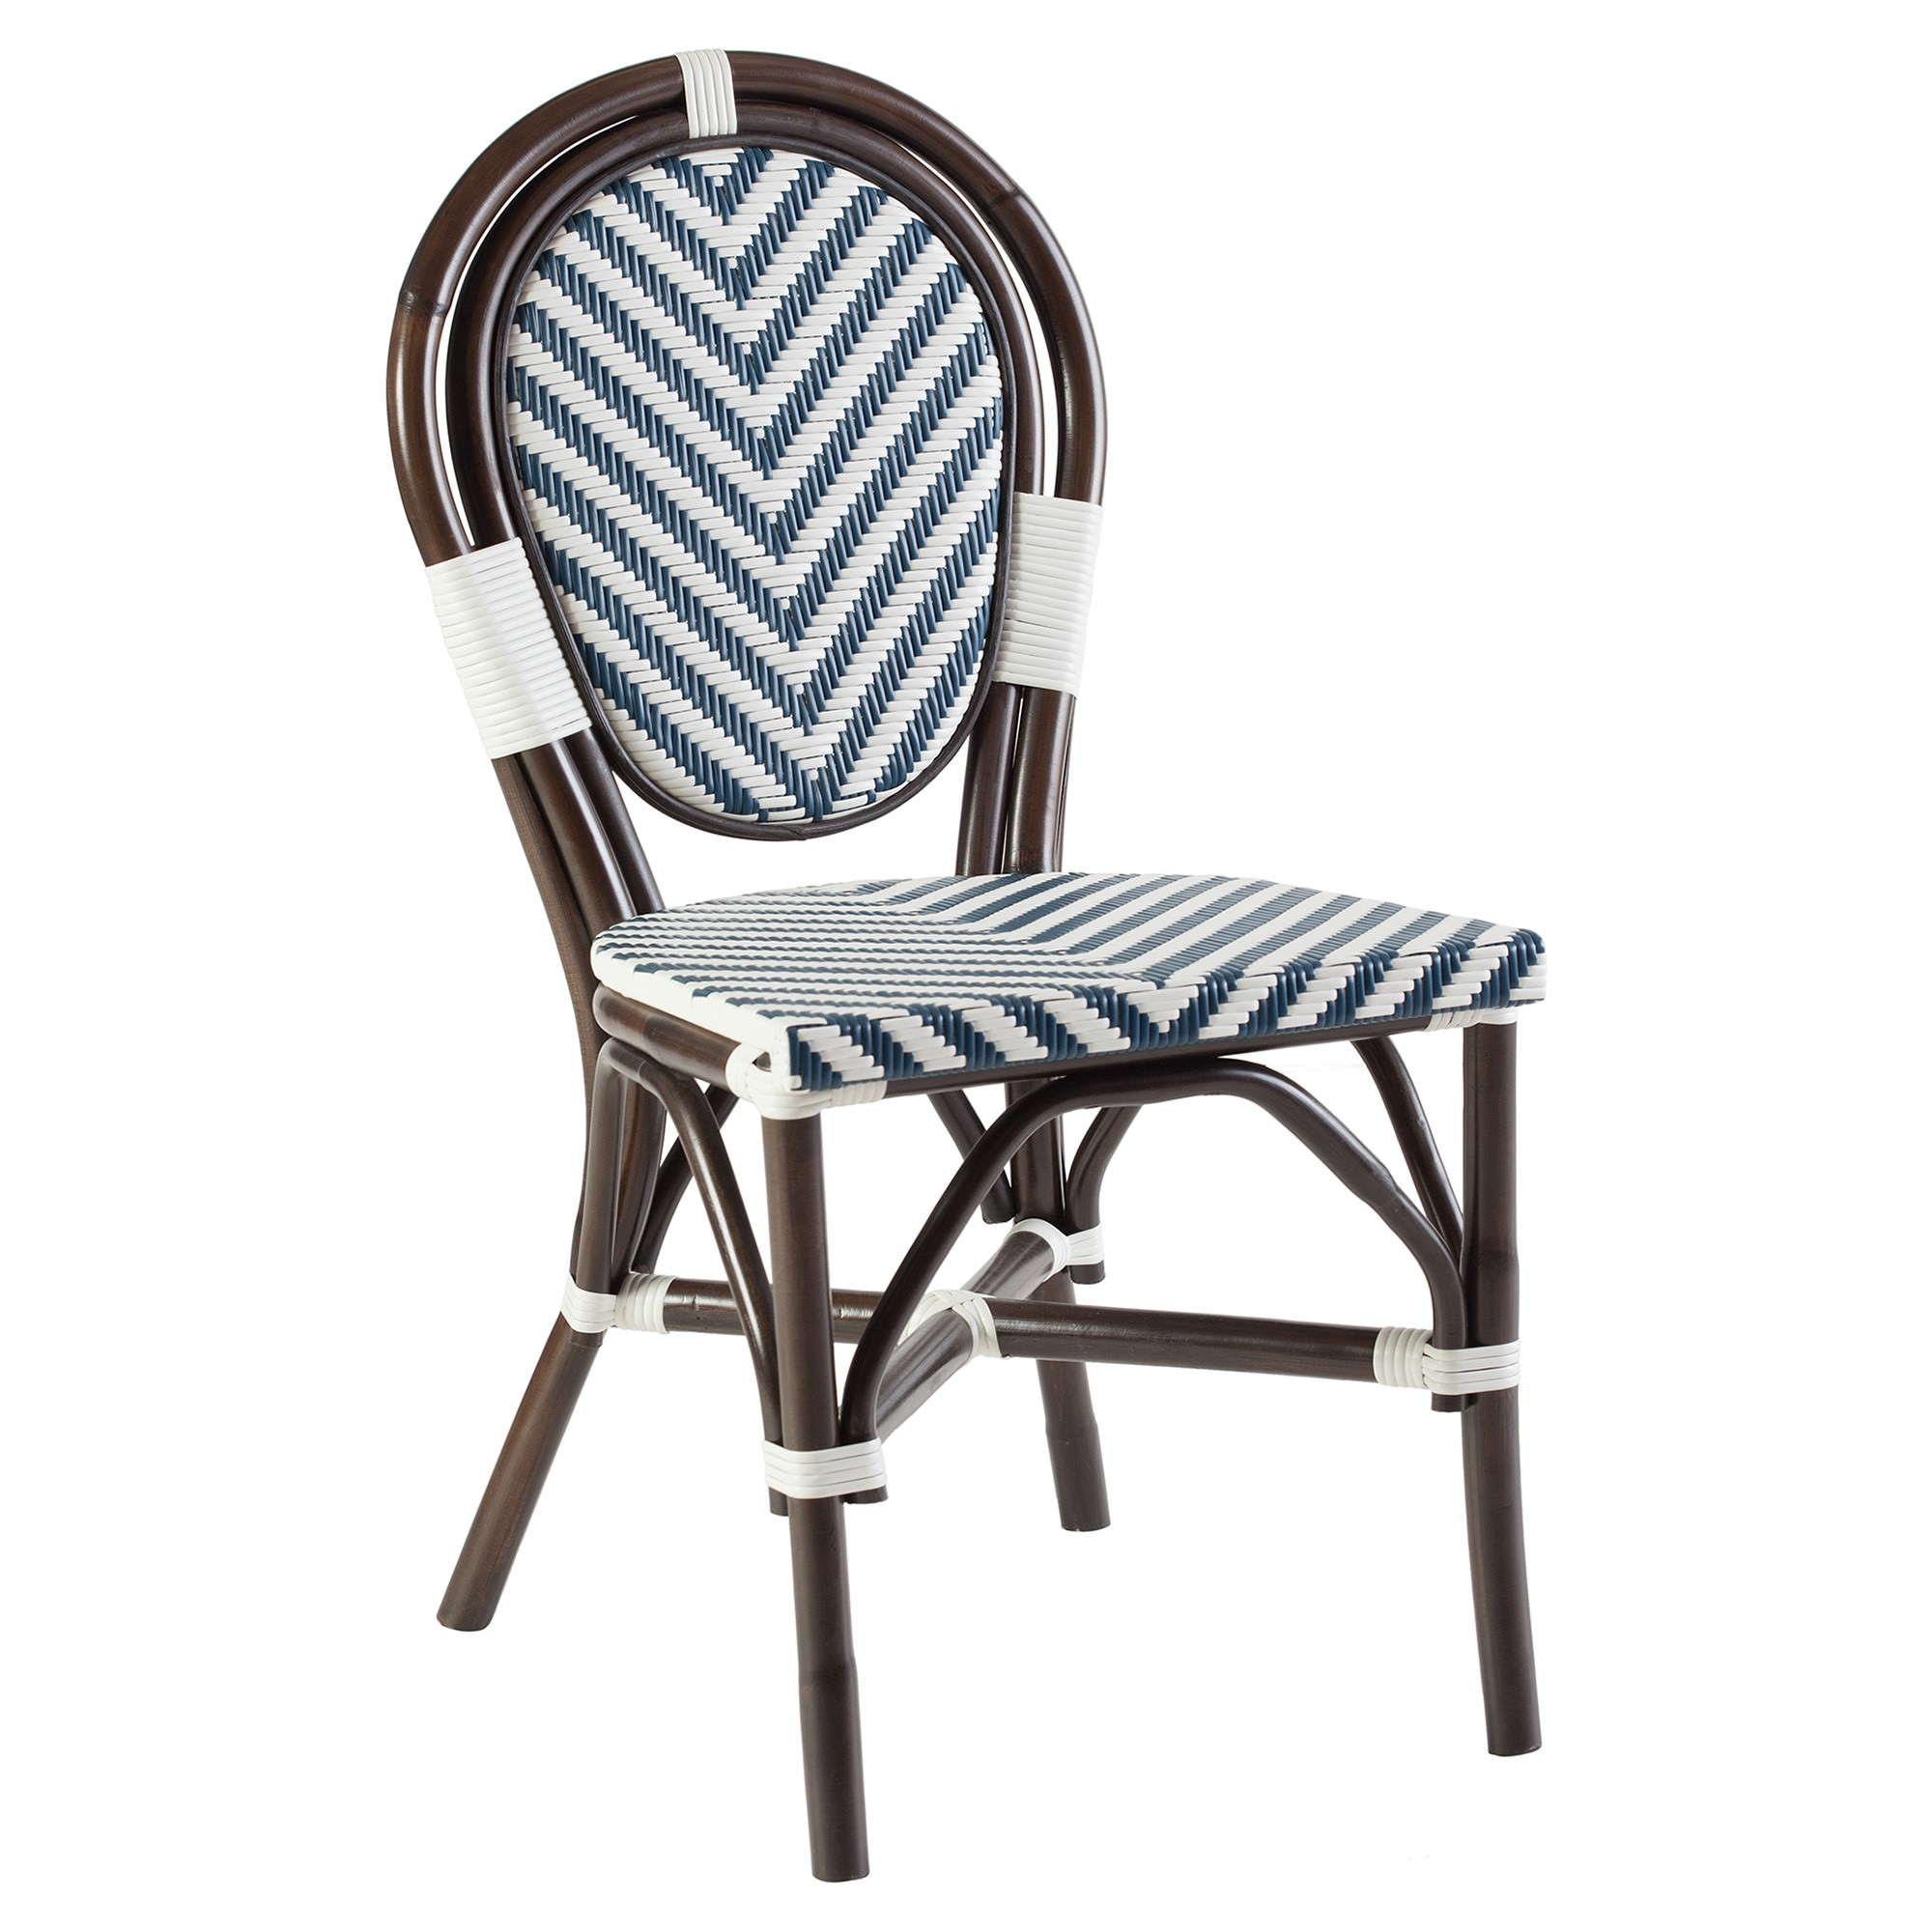 Kingsley Rattan Bistro Dining Chair